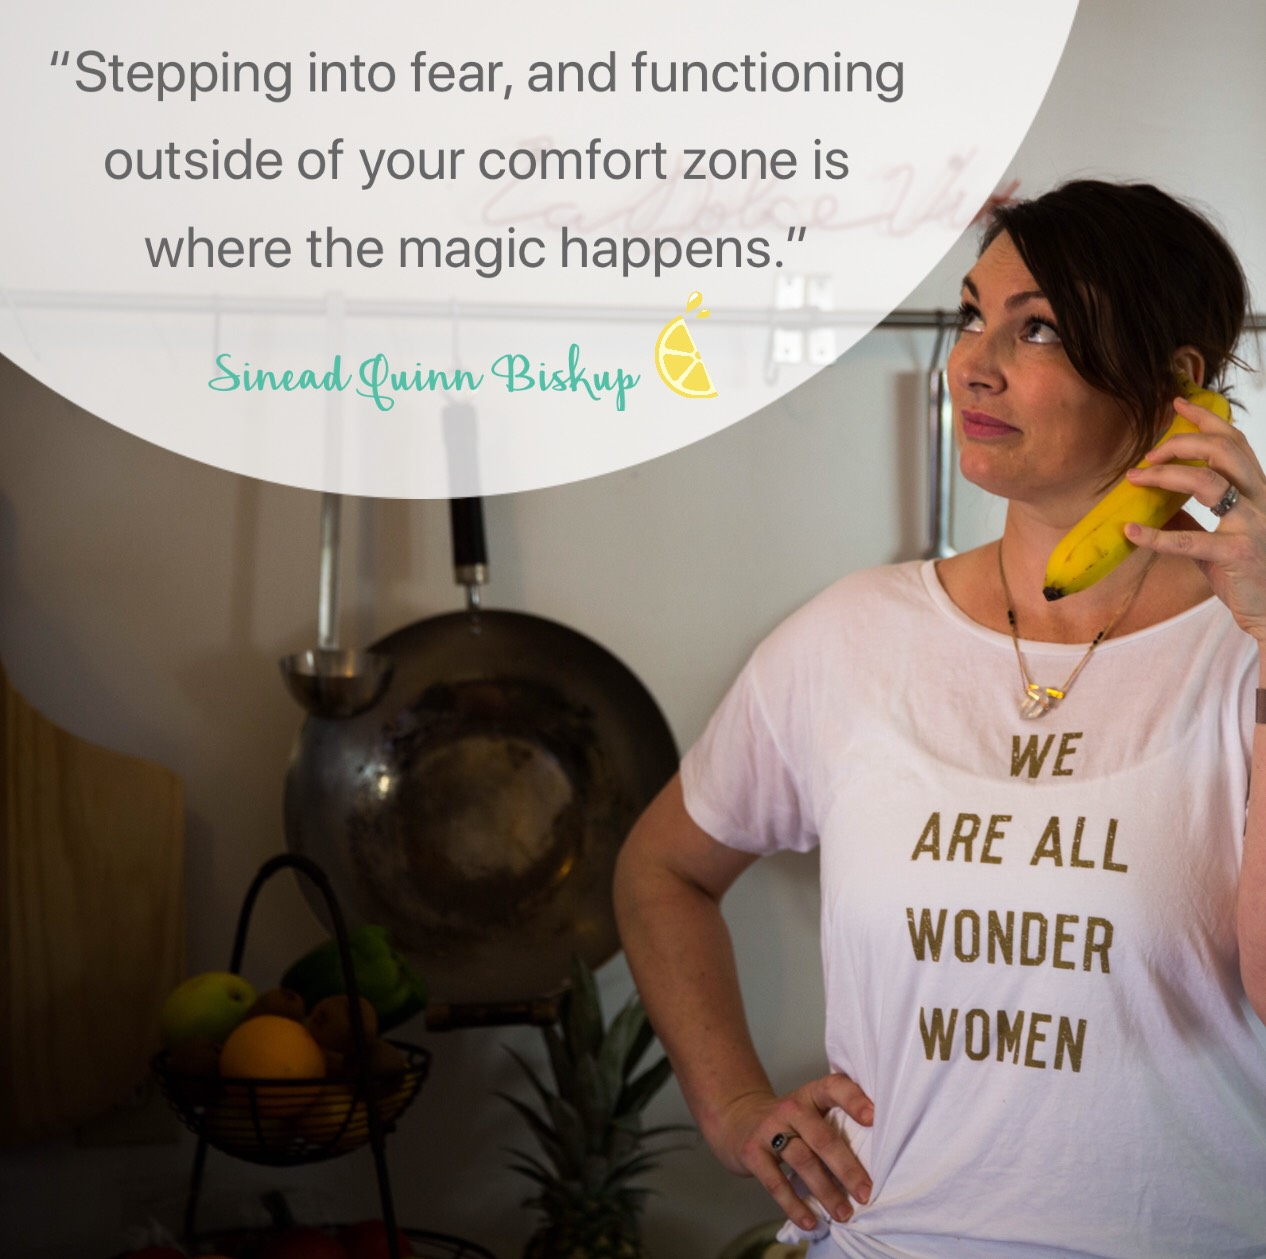 Sinead Quinn Biskup, Health Coach Quote: Stepping into fear, and functioning outside your comfort zone is where the magic happens.